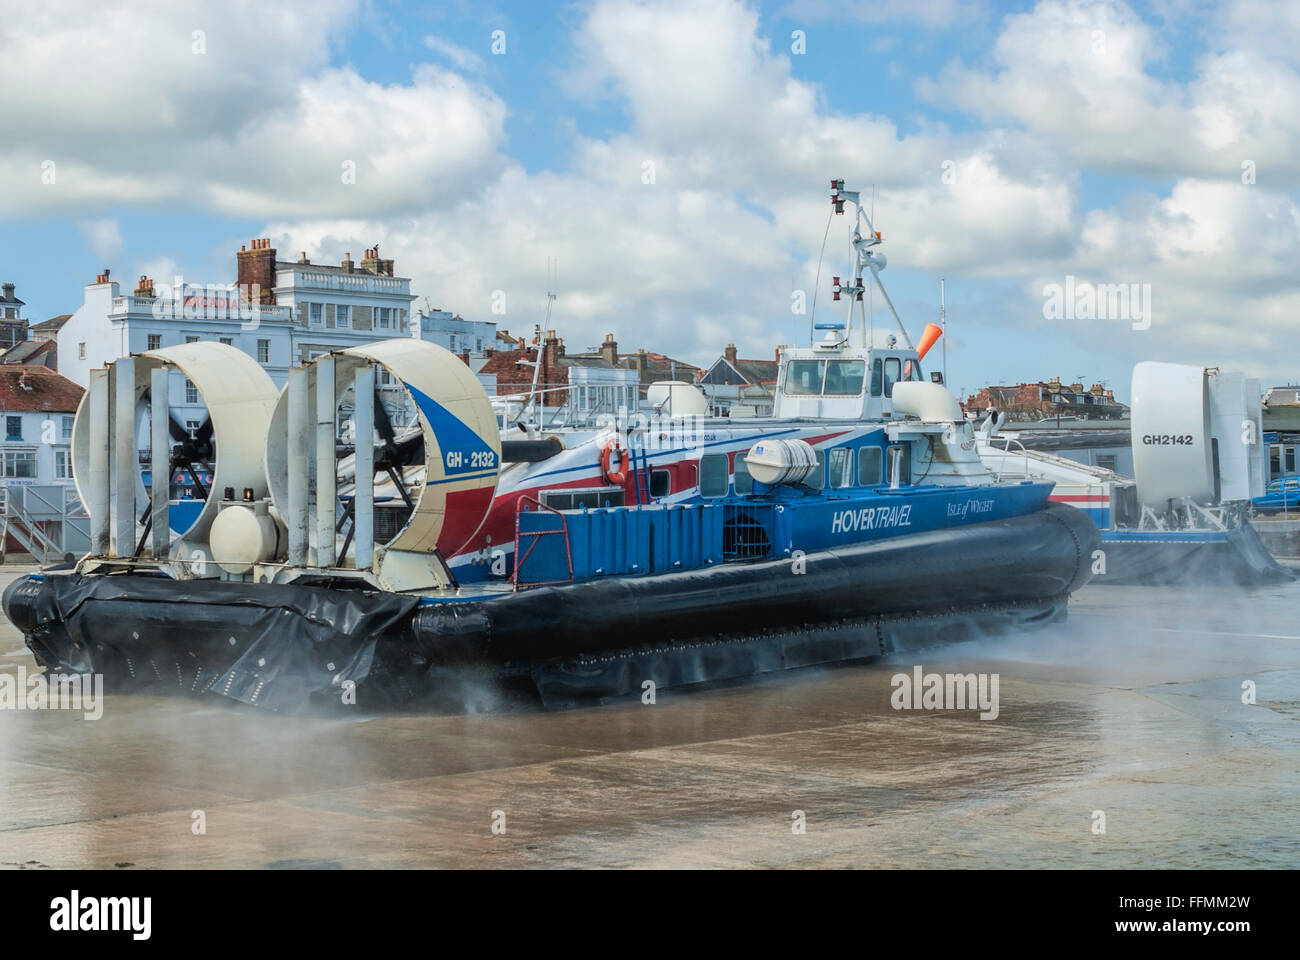 Hovertravel Hovercraft Ferry leaving the harbour of Ryde on the Isle of Wight, England | Luftkissenboot im Hafen - Stock Image